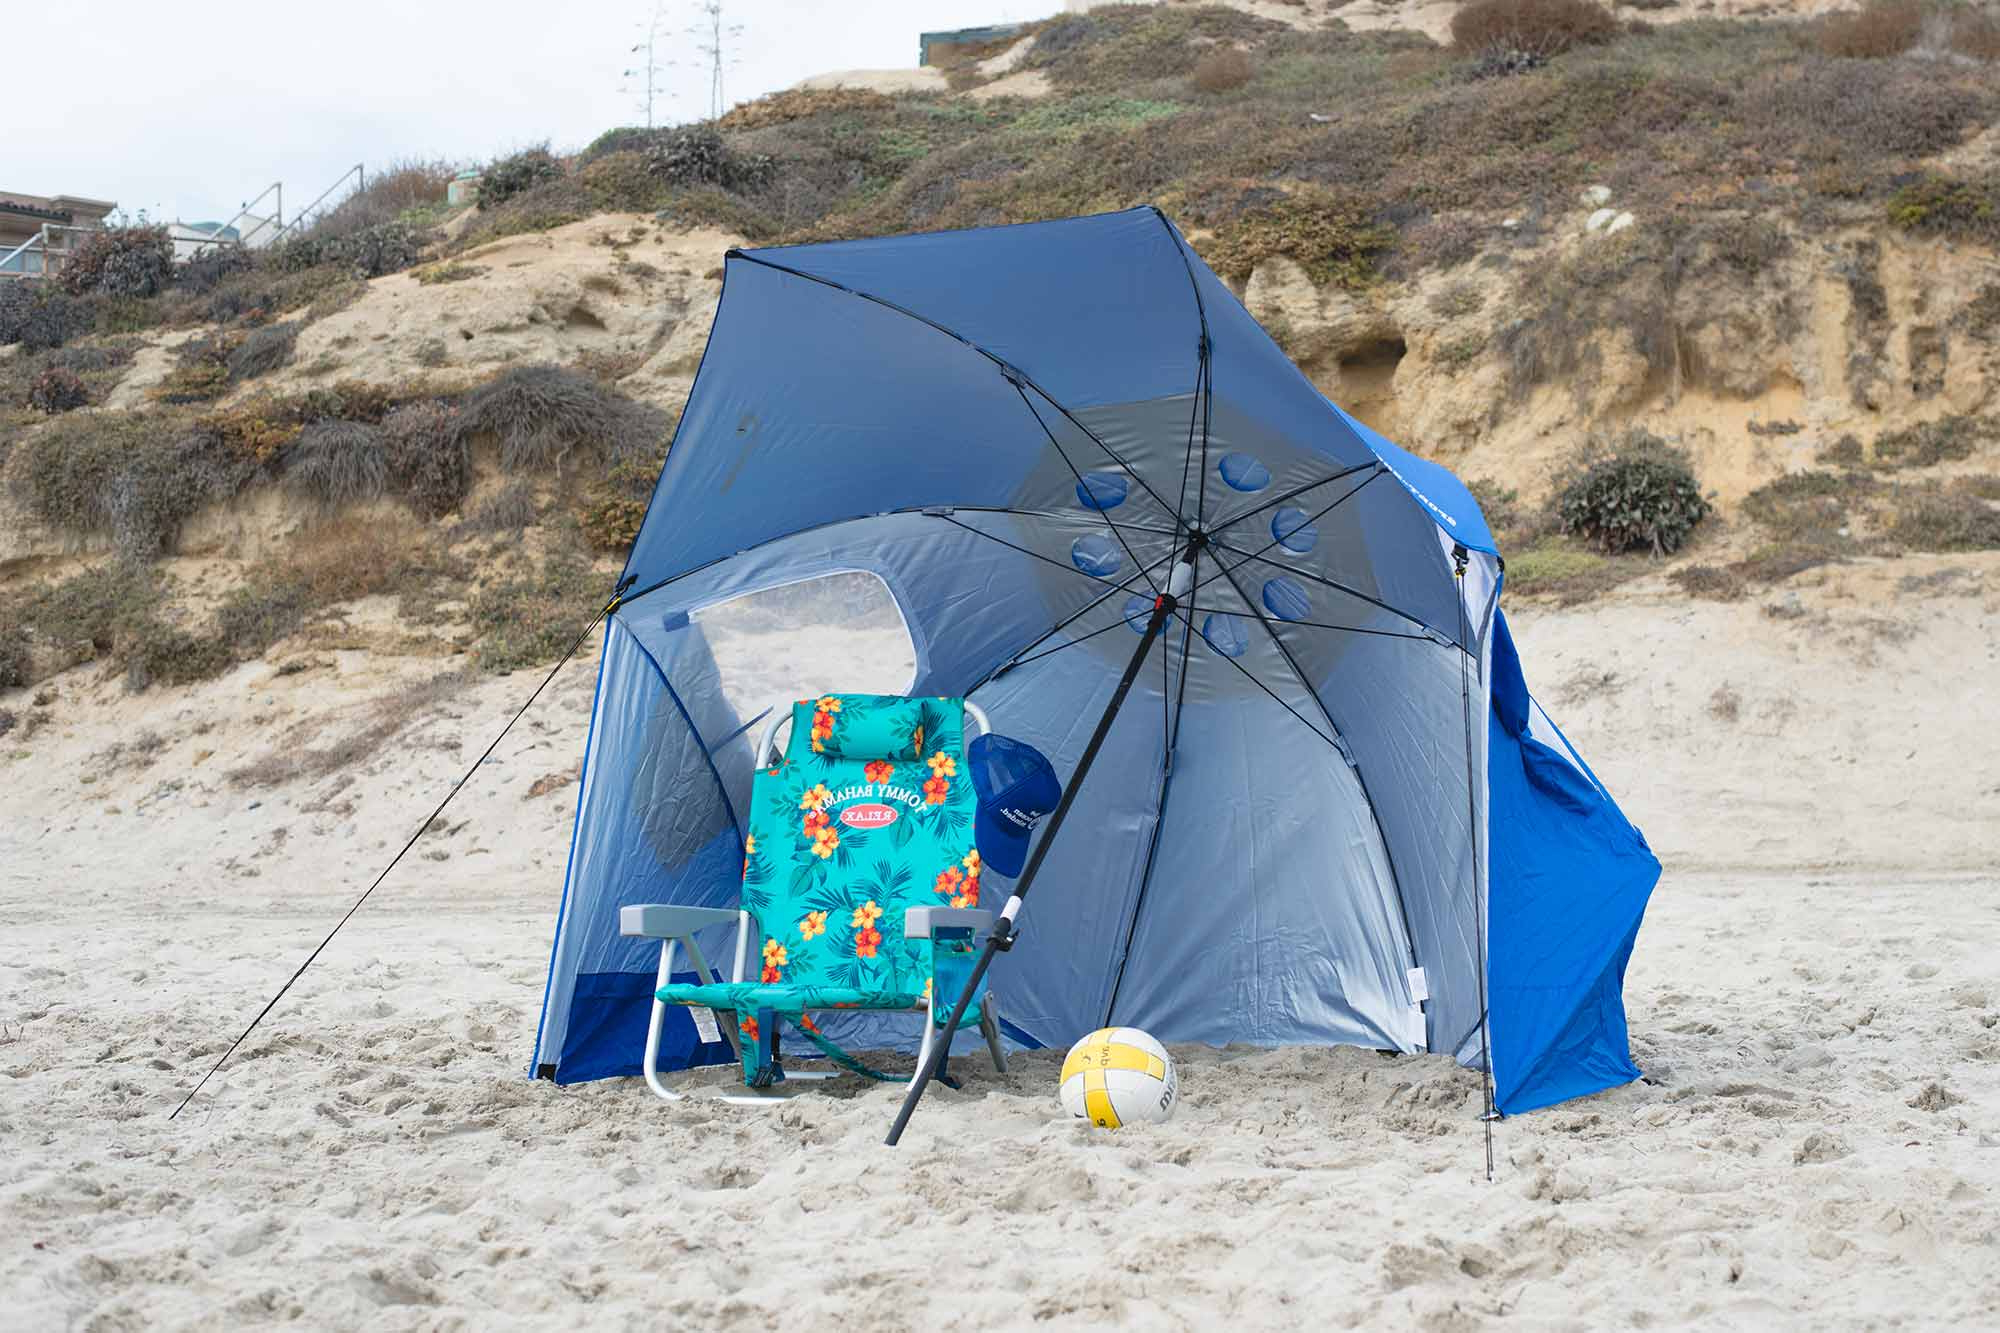 Latest The Best Beach Umbrellas, Chairs & Tents Of 2019 – Your Best Digs Within Sun Shelter Beach Umbrellas (View 5 of 20)